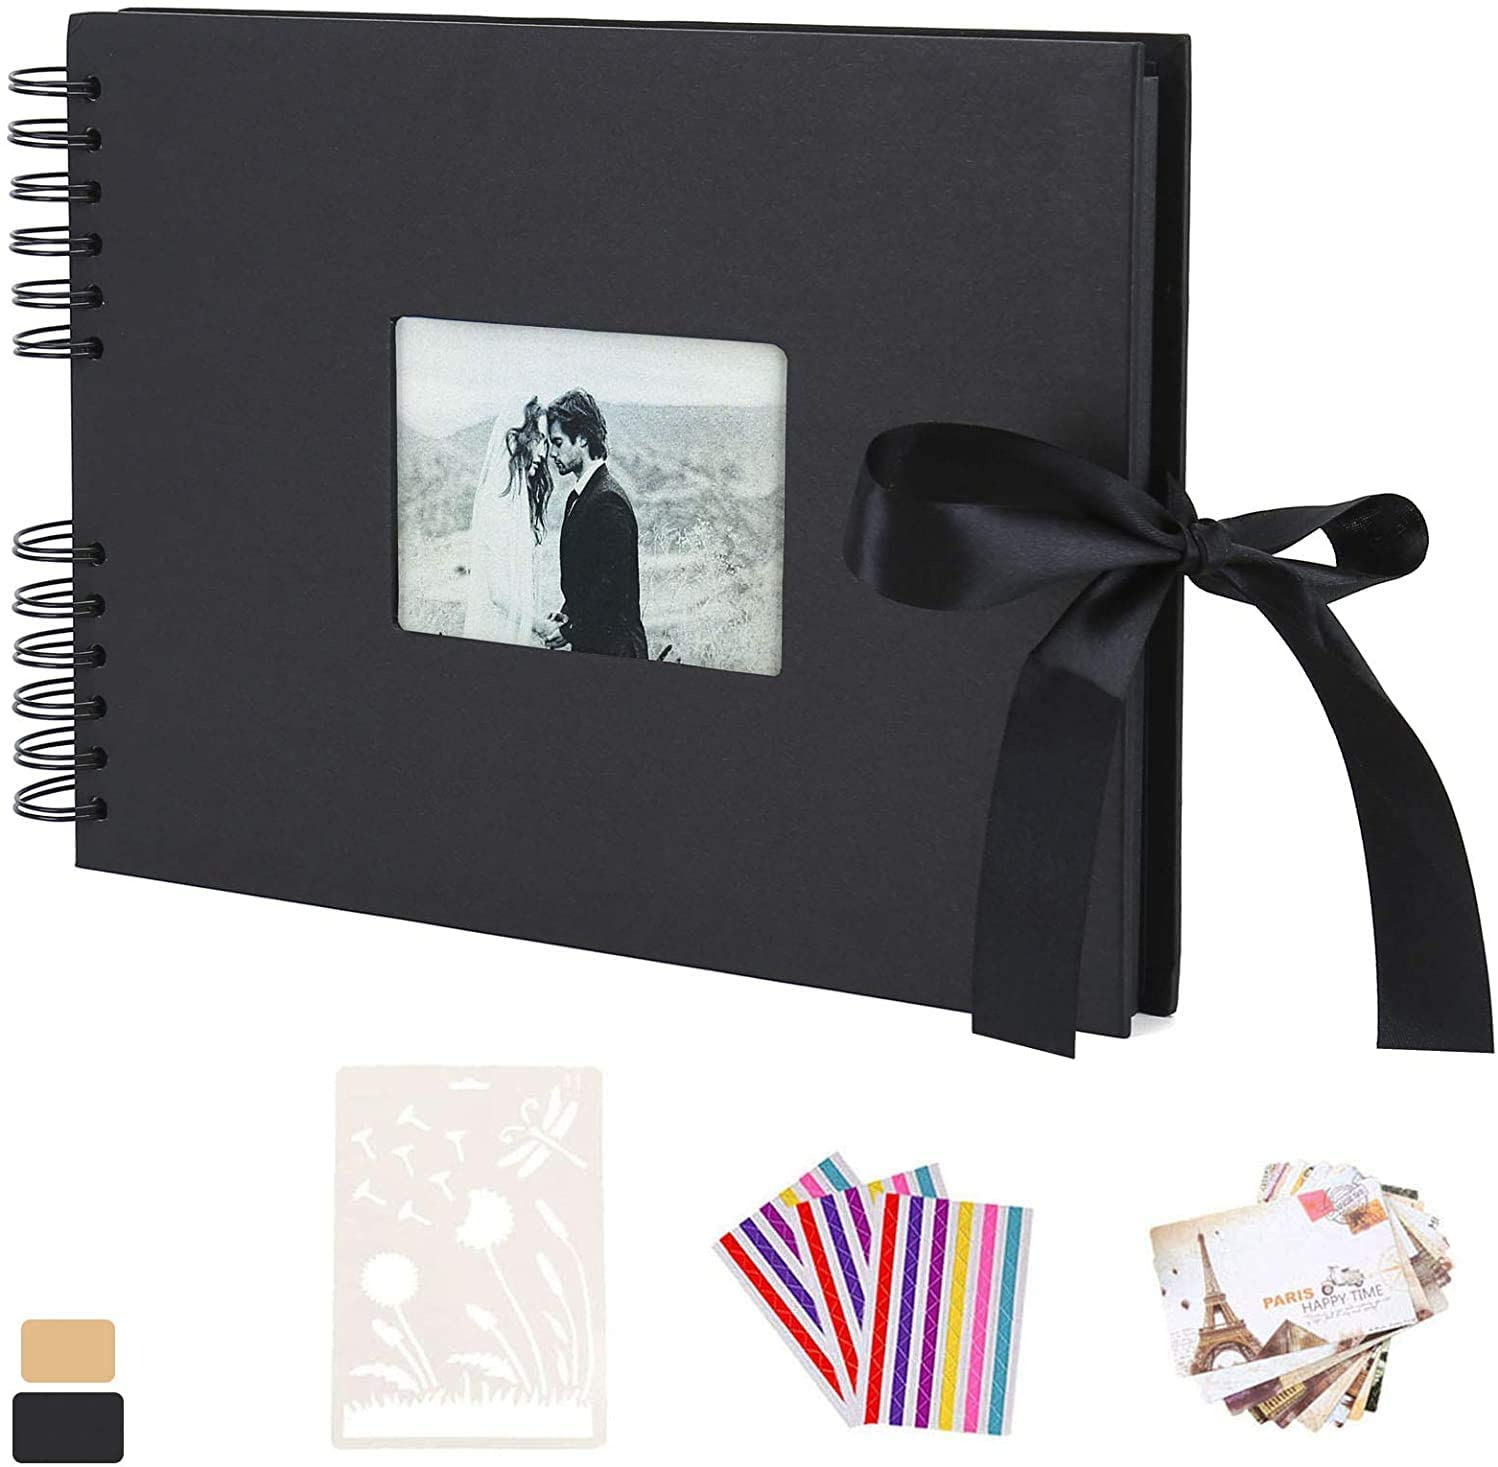 Scarpbook Photo Album, AIOR Picture Album 80 Black Pages with Silk Ribbon Hardcover Paper DIY Scrapbooking for Memory Book Guest Book, Wedding, Anniversary, Valentines Day Gifts(Black)